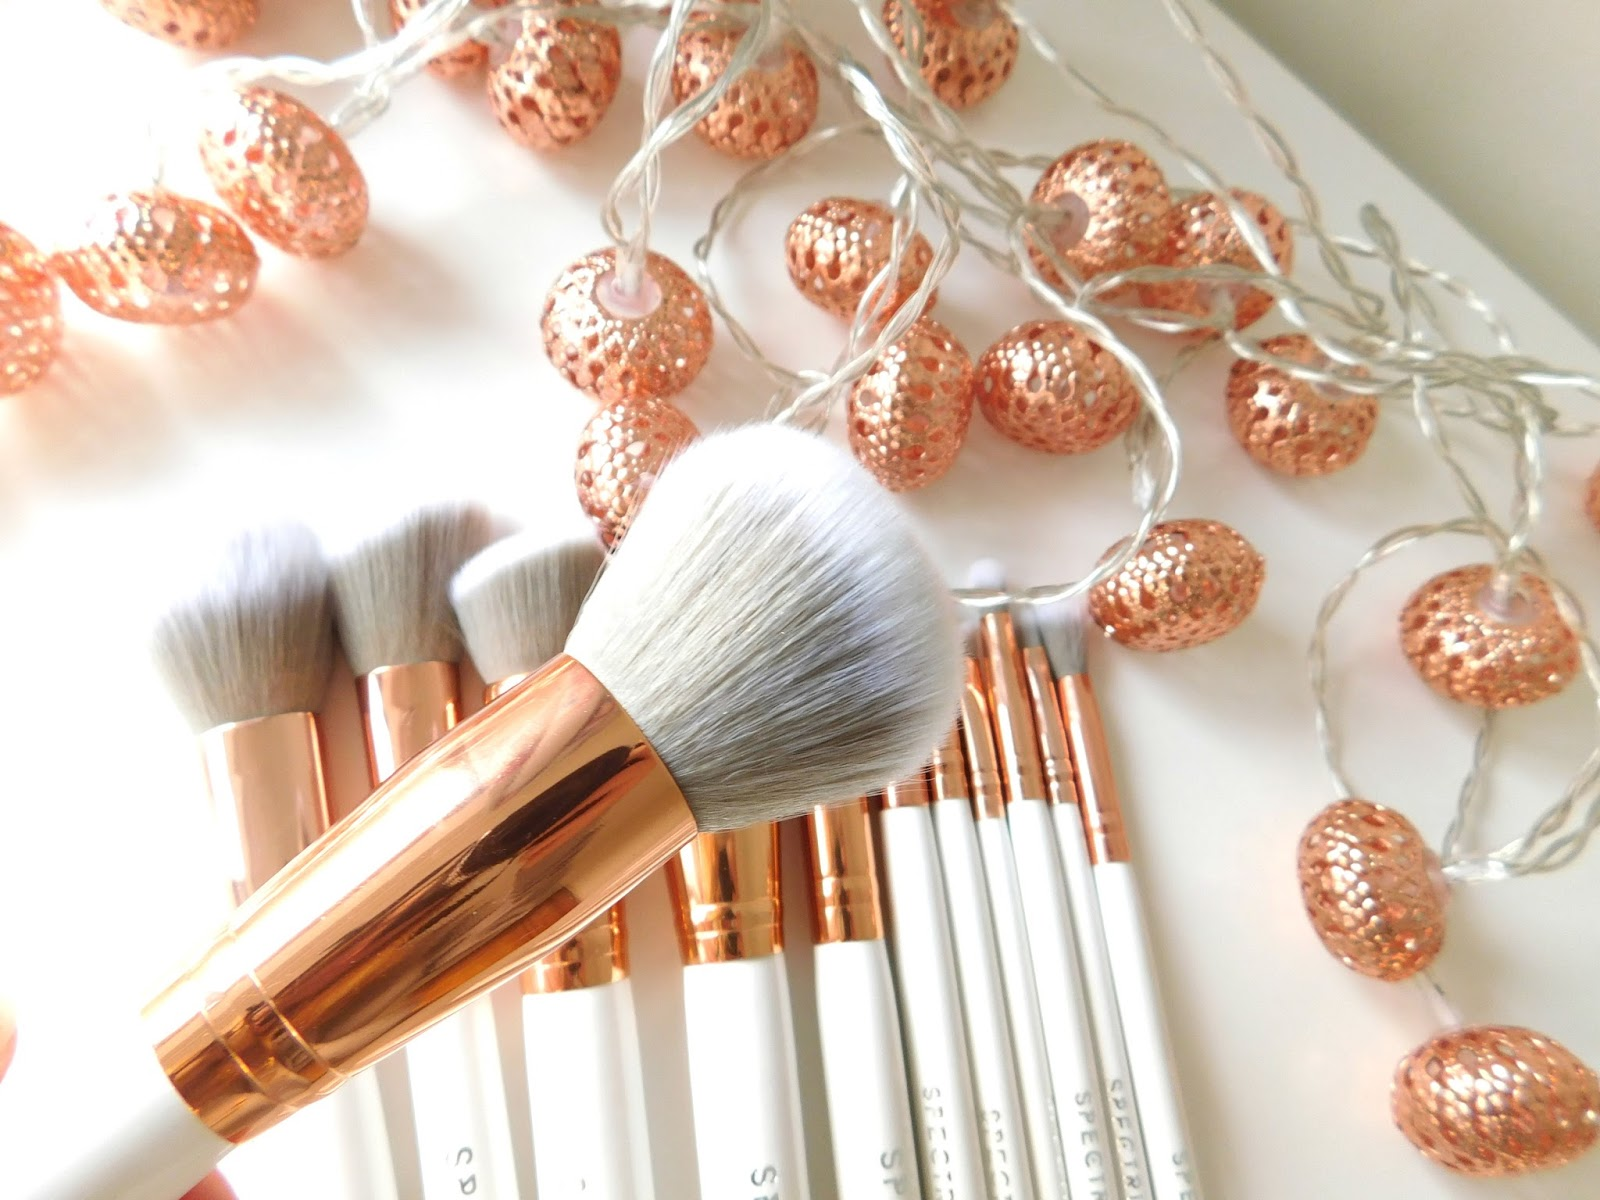 Spectrum Brushes, Makeup Brushes, Review, Spectrum White Marbleous Set